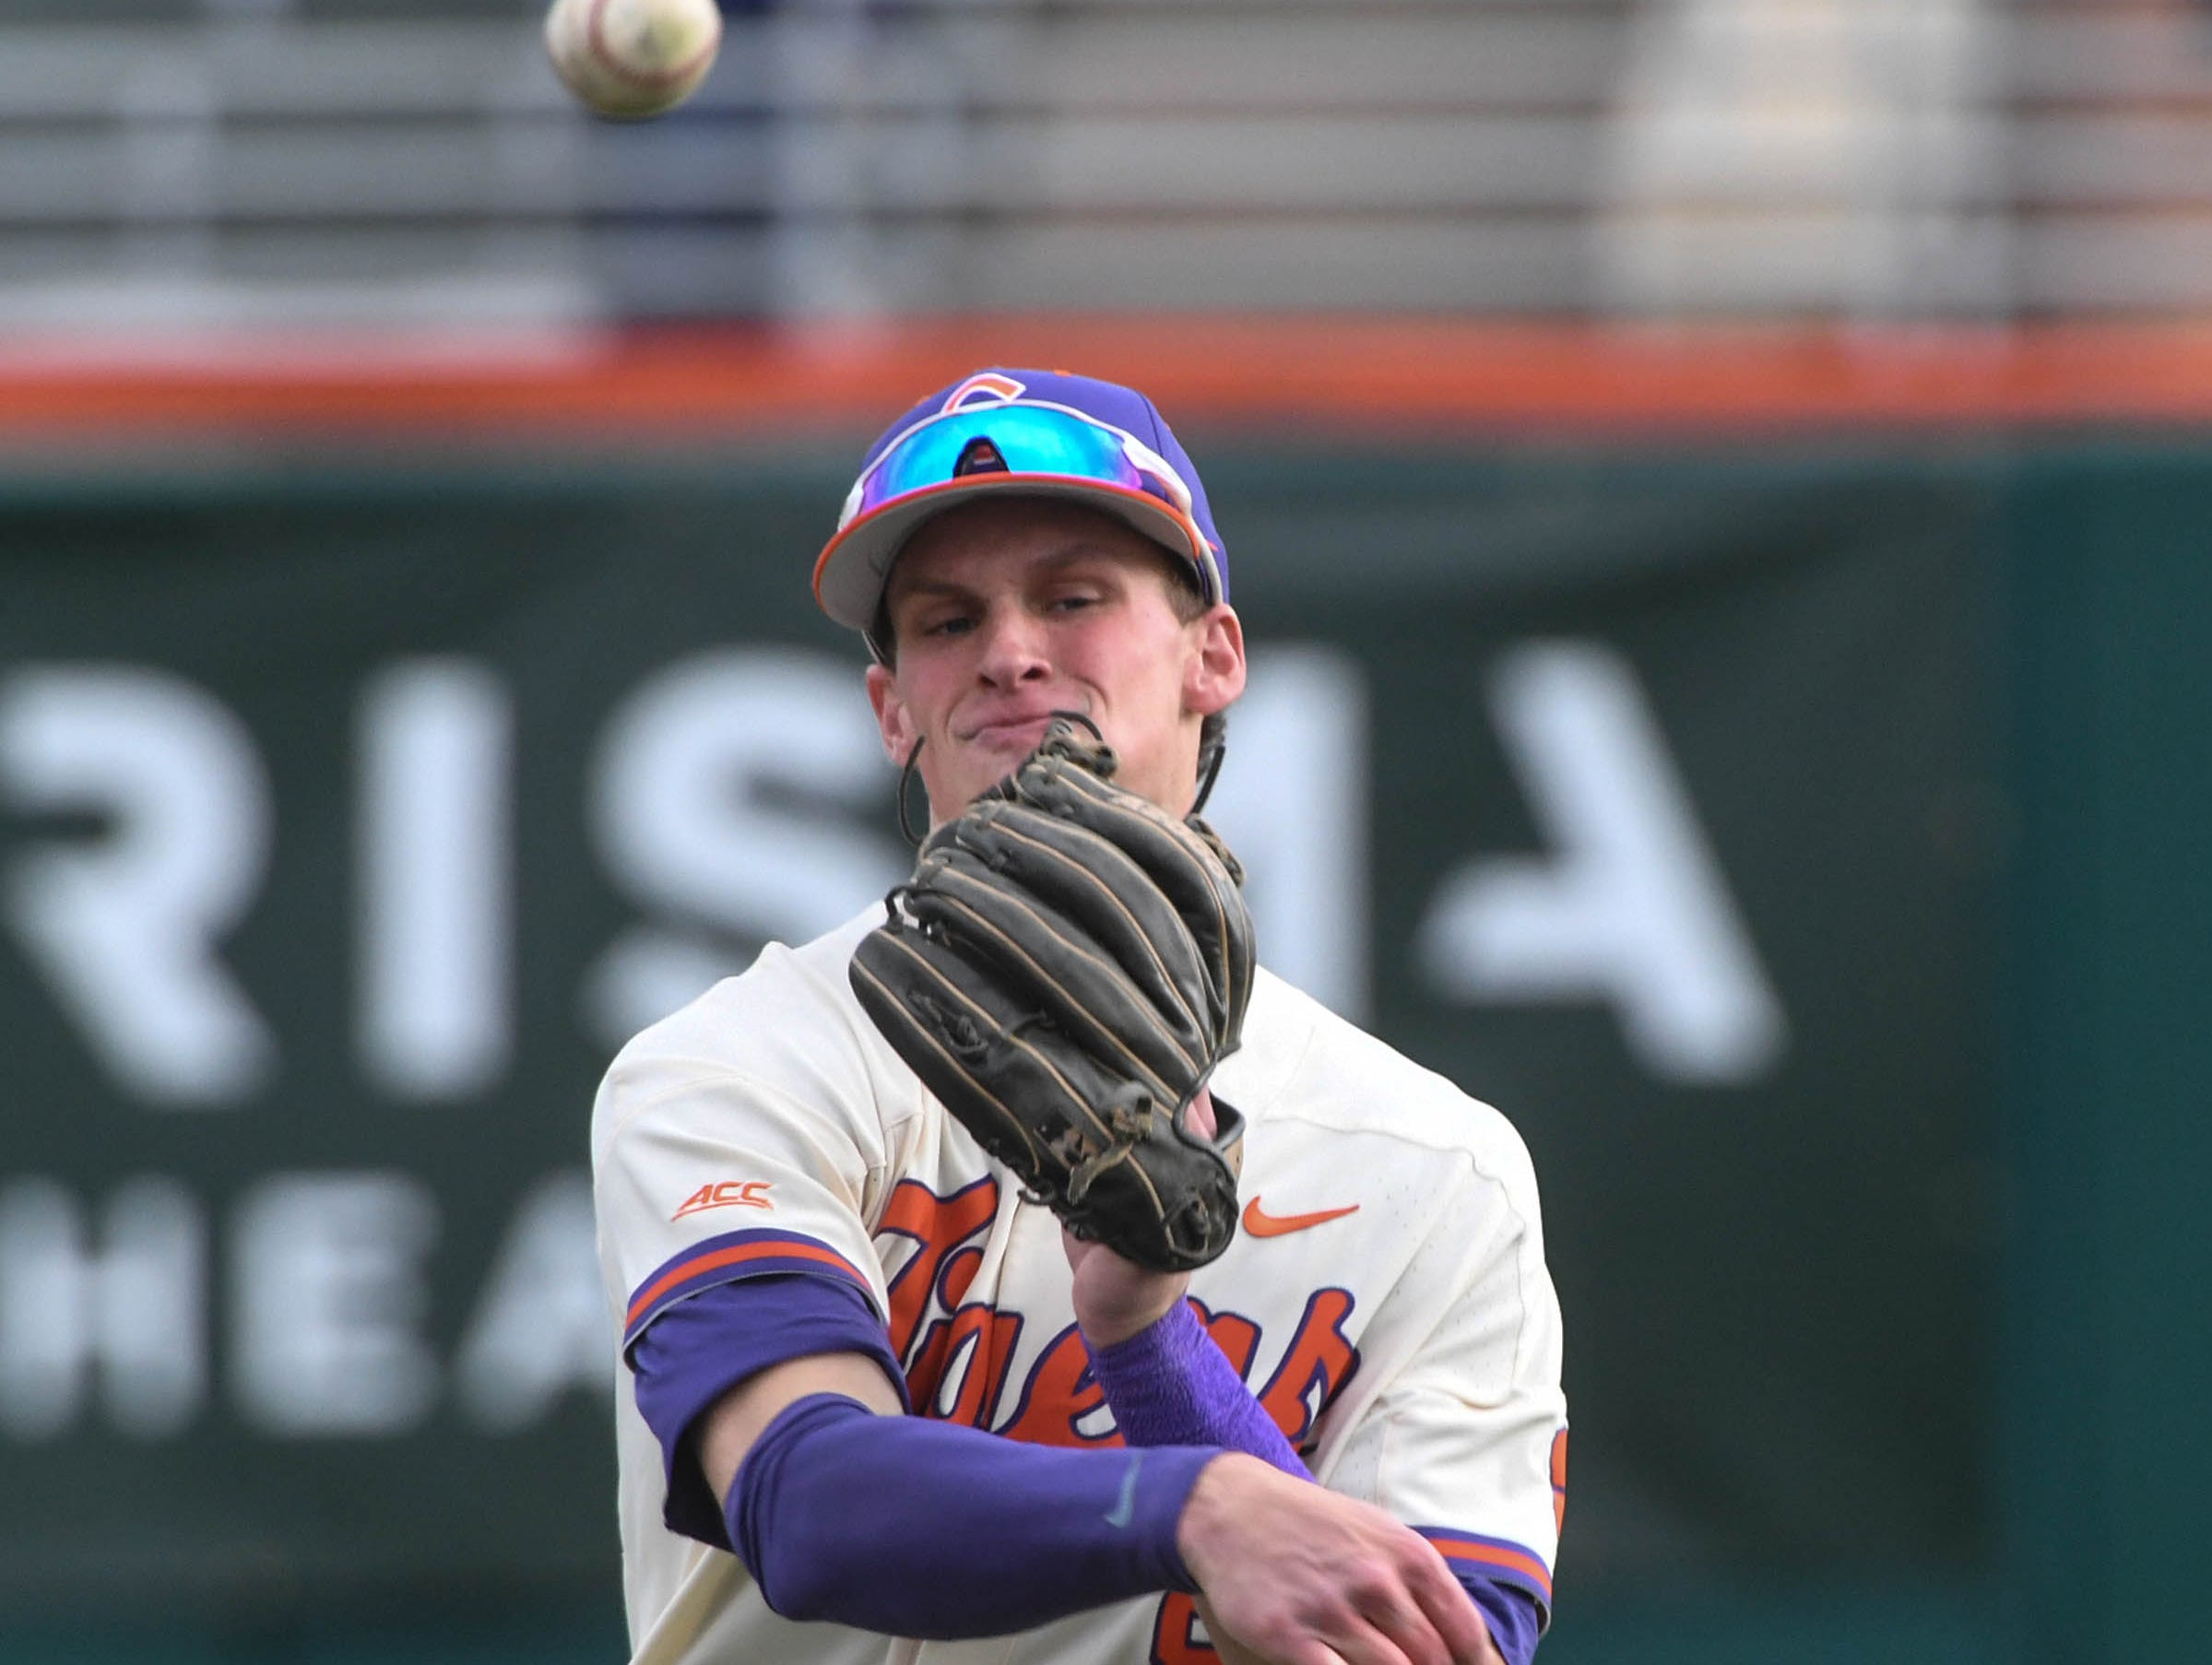 Clemson junior Logan Davidson(8) warms up before the game with Charlotte at Doug Kingsmore Stadium in Clemson Monday, February 18, 2019.